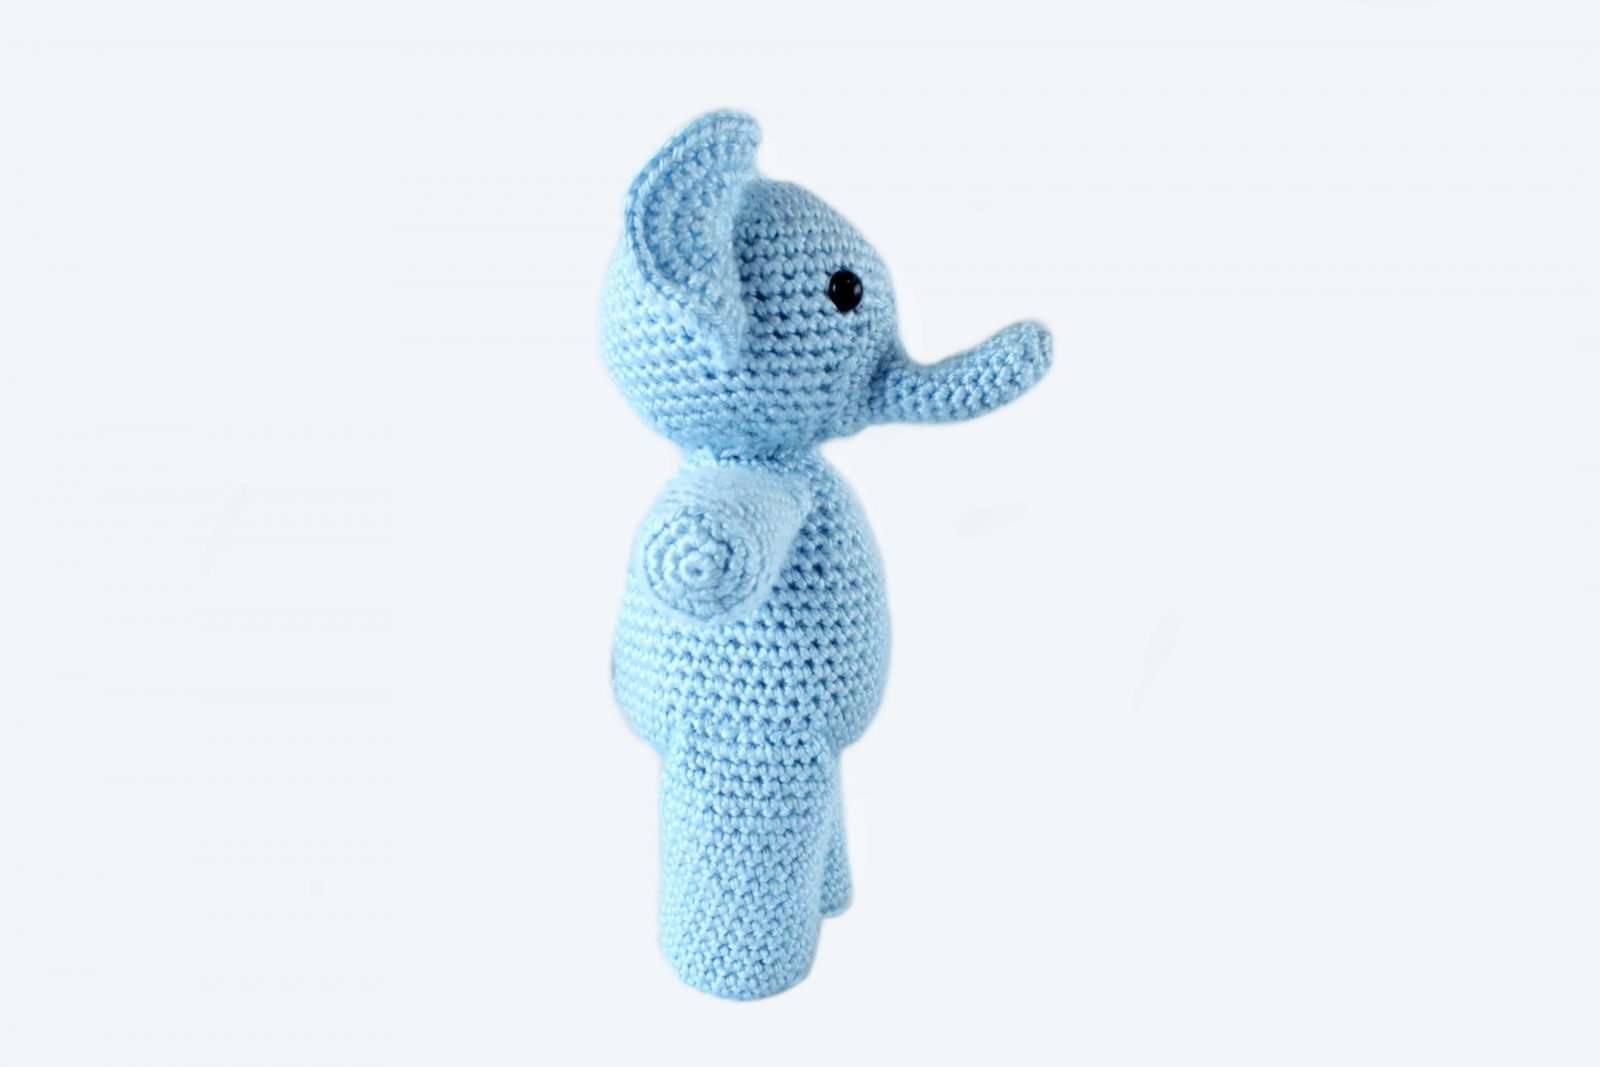 Blue Sitting Elephant, Crochet Toy. Stock Photo, Picture And ... | 1067x1600